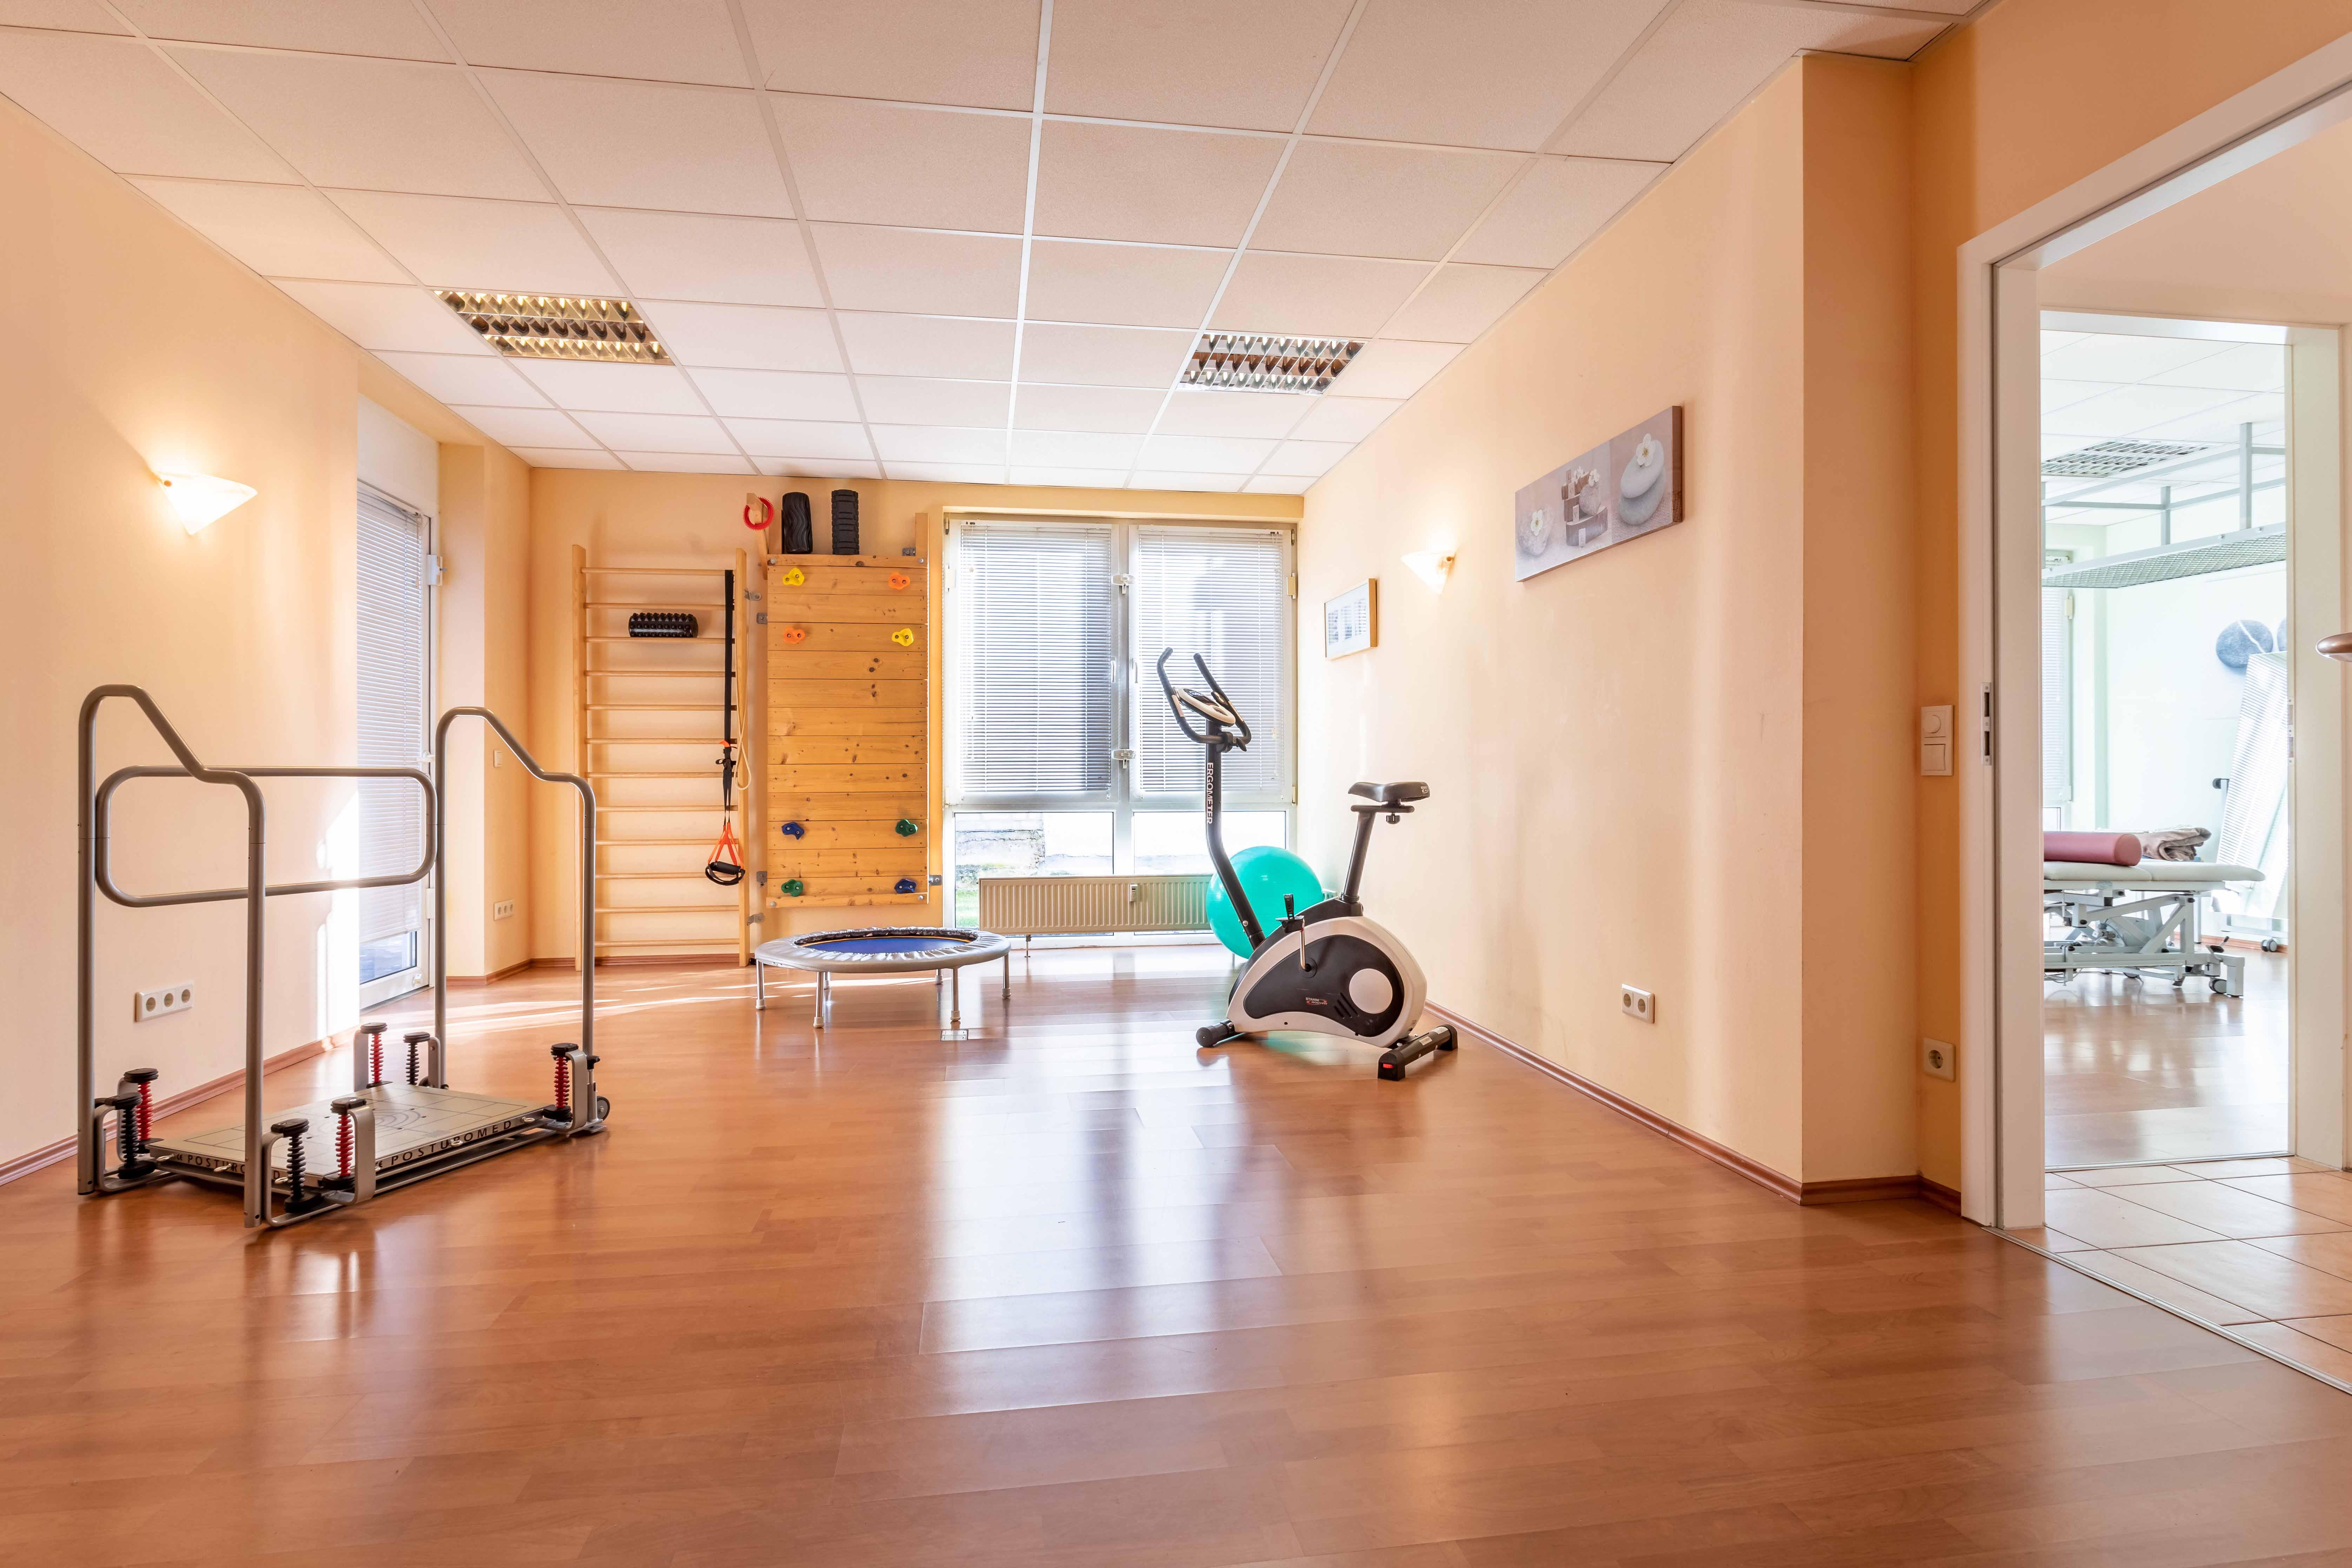 Physiotherapie Kriese Bonn